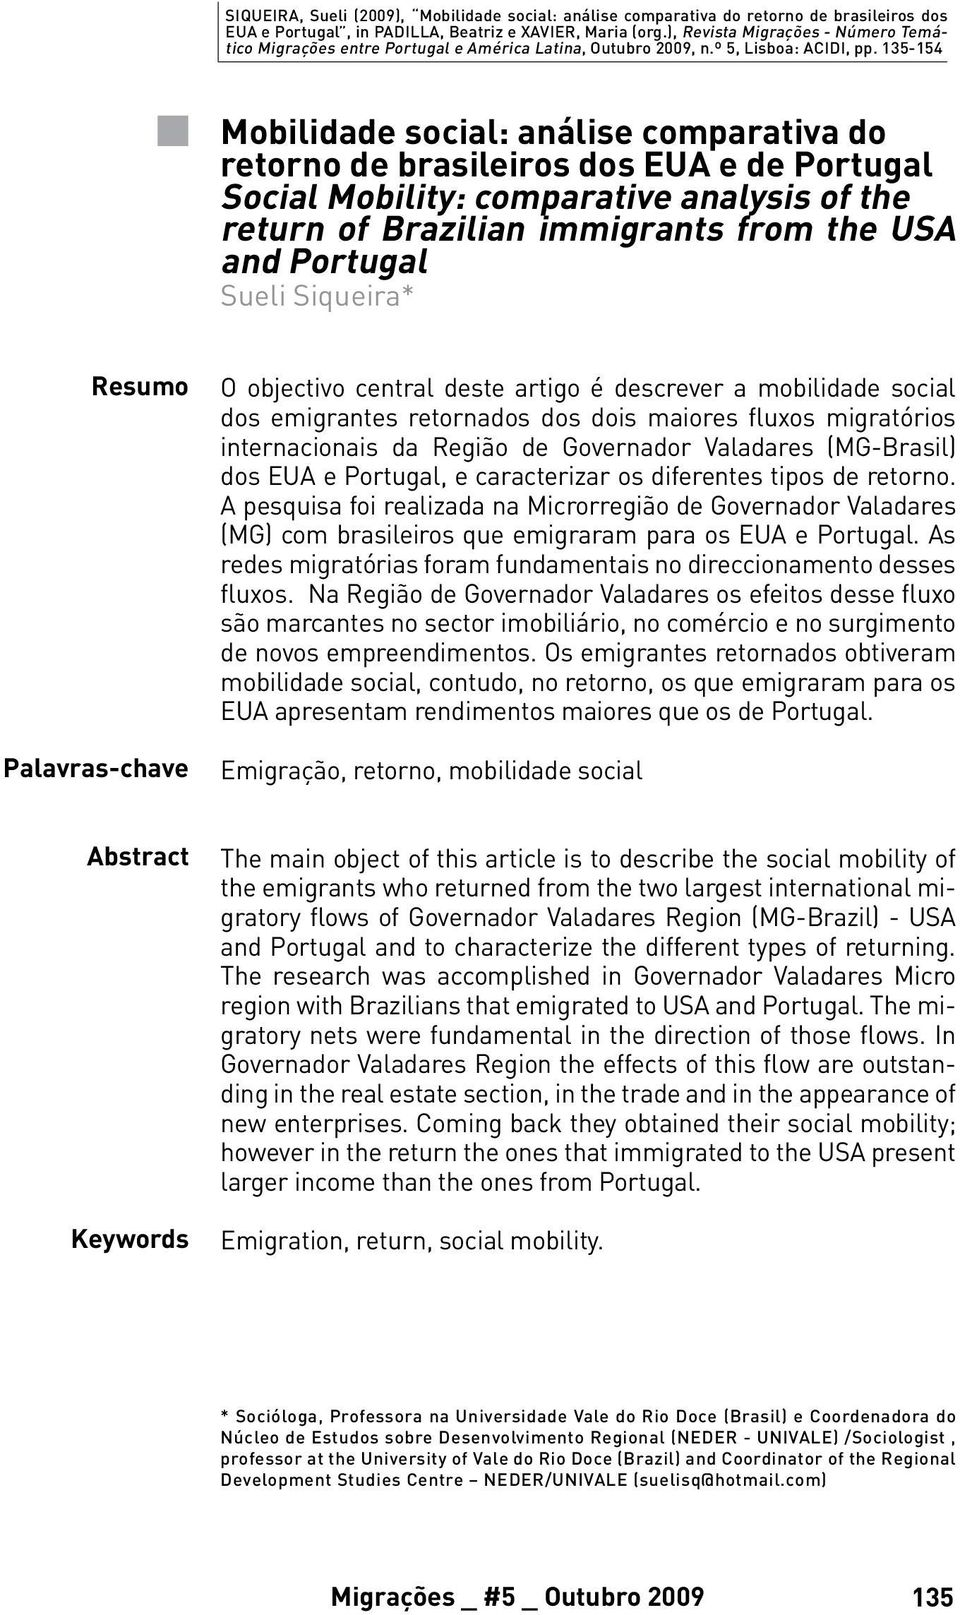 135-154 Mobilidade social: análise comparativa do retorno de brasileiros dos EUA e de Portugal Social Mobility: comparative analysis of the return of Brazilian immigrants from the USA and Portugal